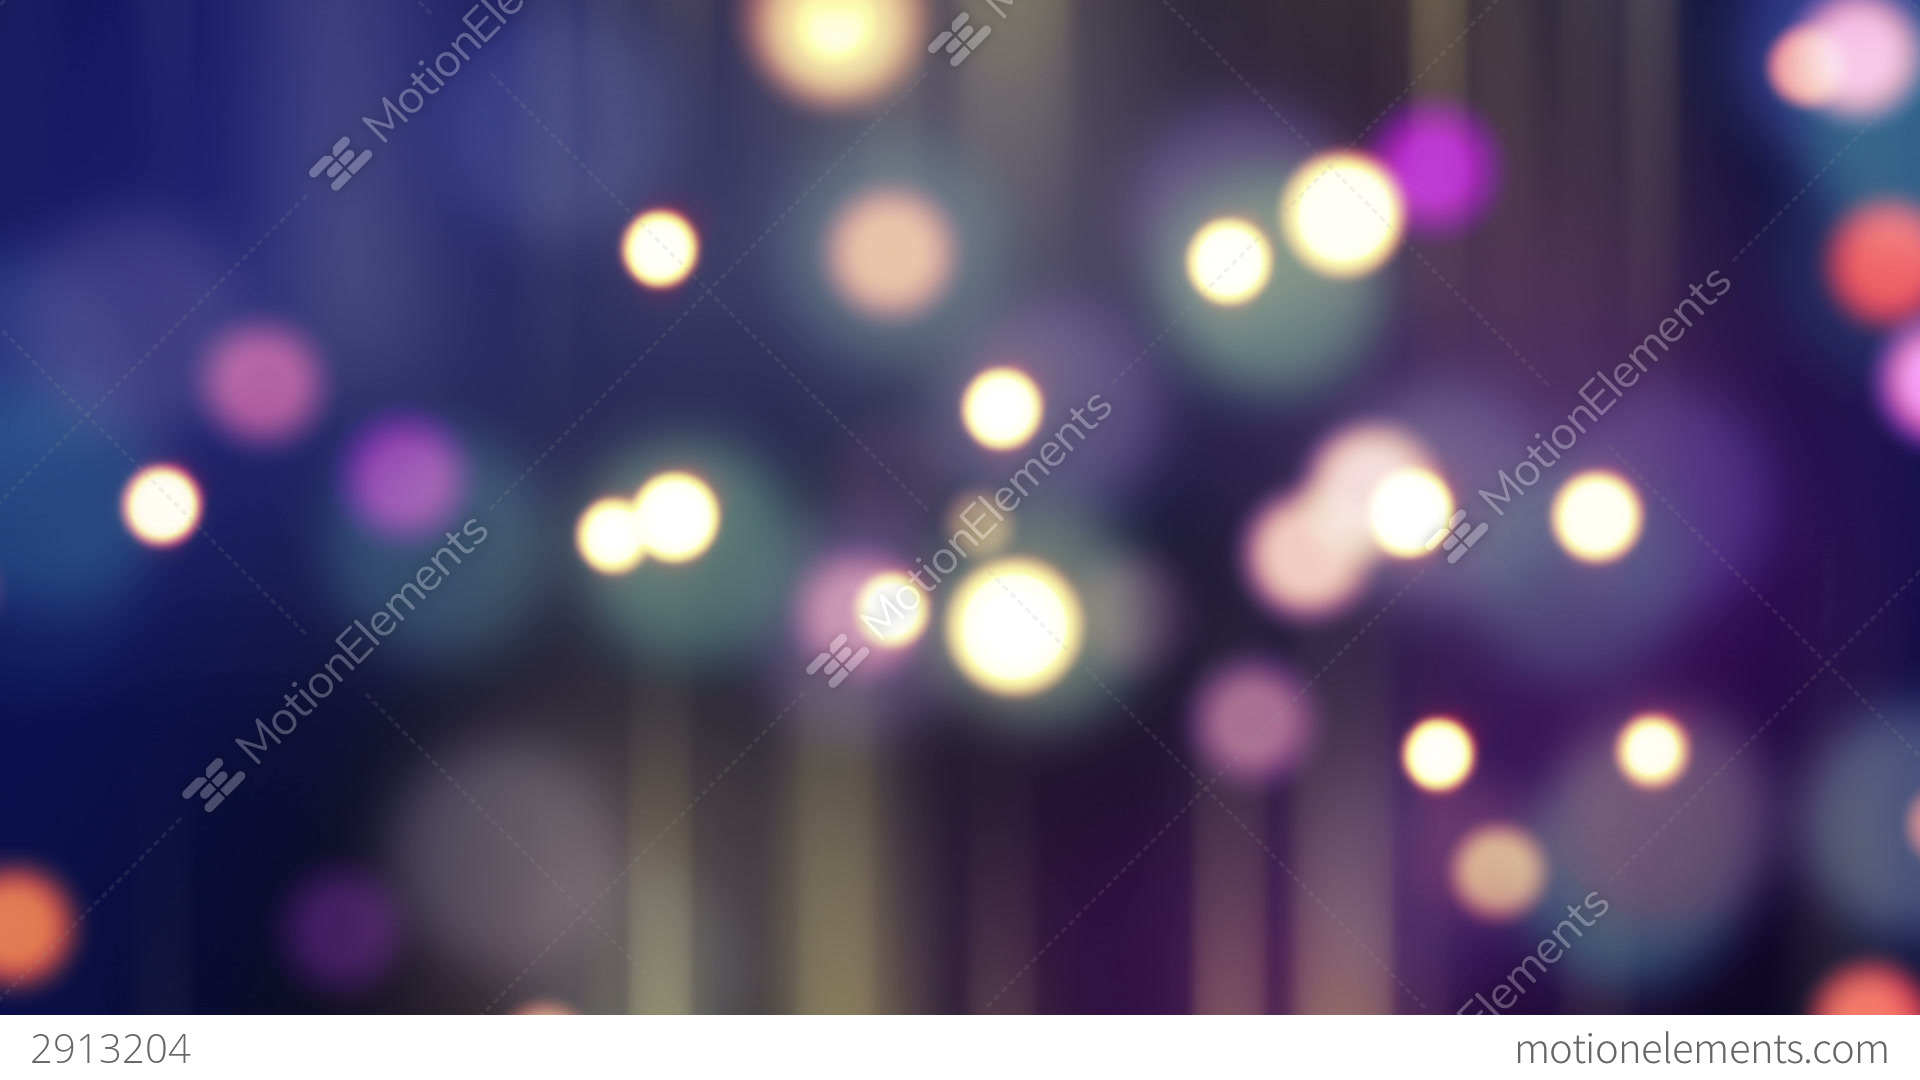 Glowing Bulb Animation Blurred Glowing Bokeh Lights Loop Background Stock